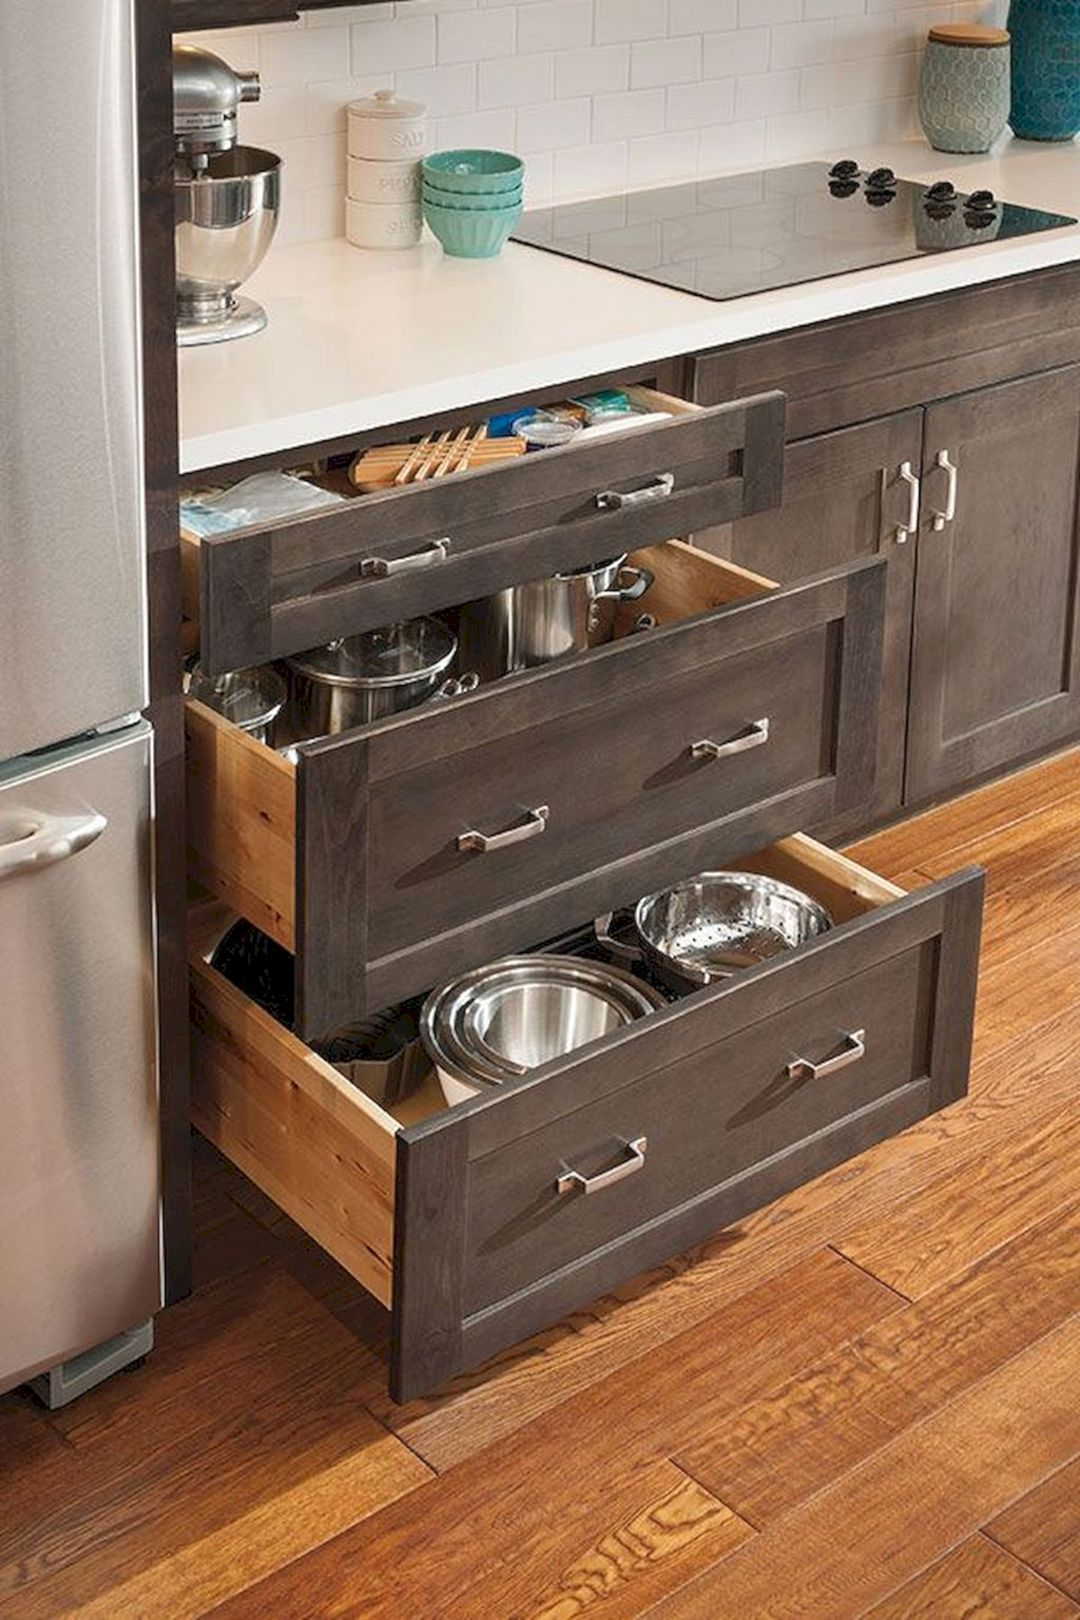 12 Marvelous Diy Kitchen Cabinet Ideas You Have To Know Diy Kitchen Storage Refacing Kitchen Cabinets Kitchen Drawers